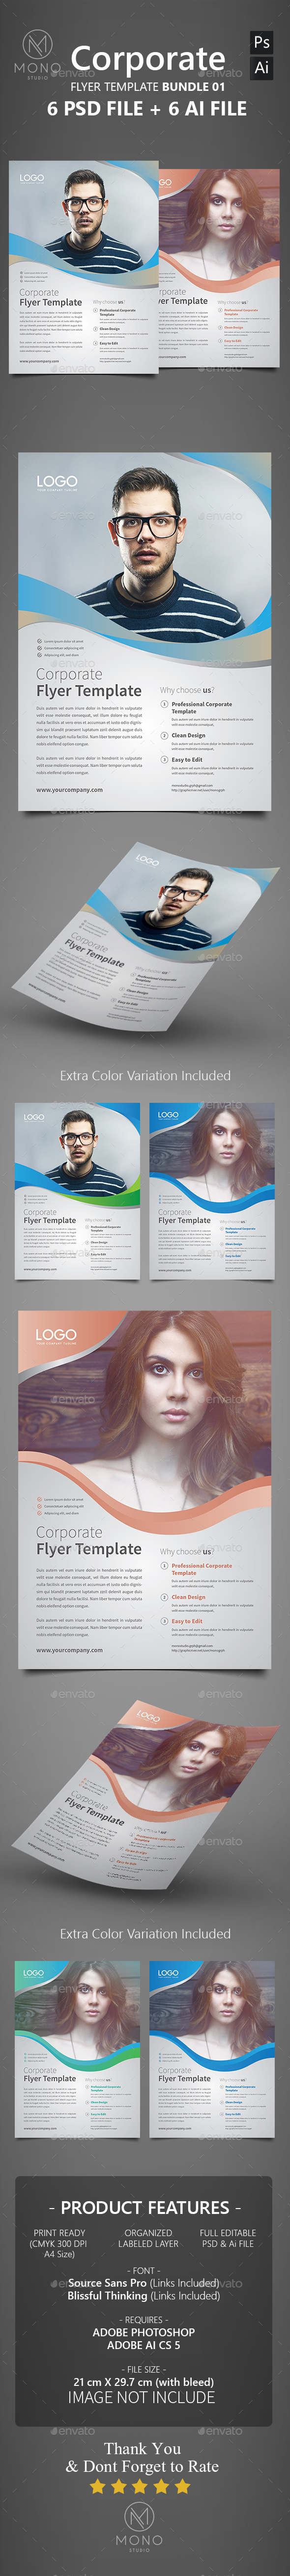 Corporate Flyer Bundle 01 - Corporate Flyers